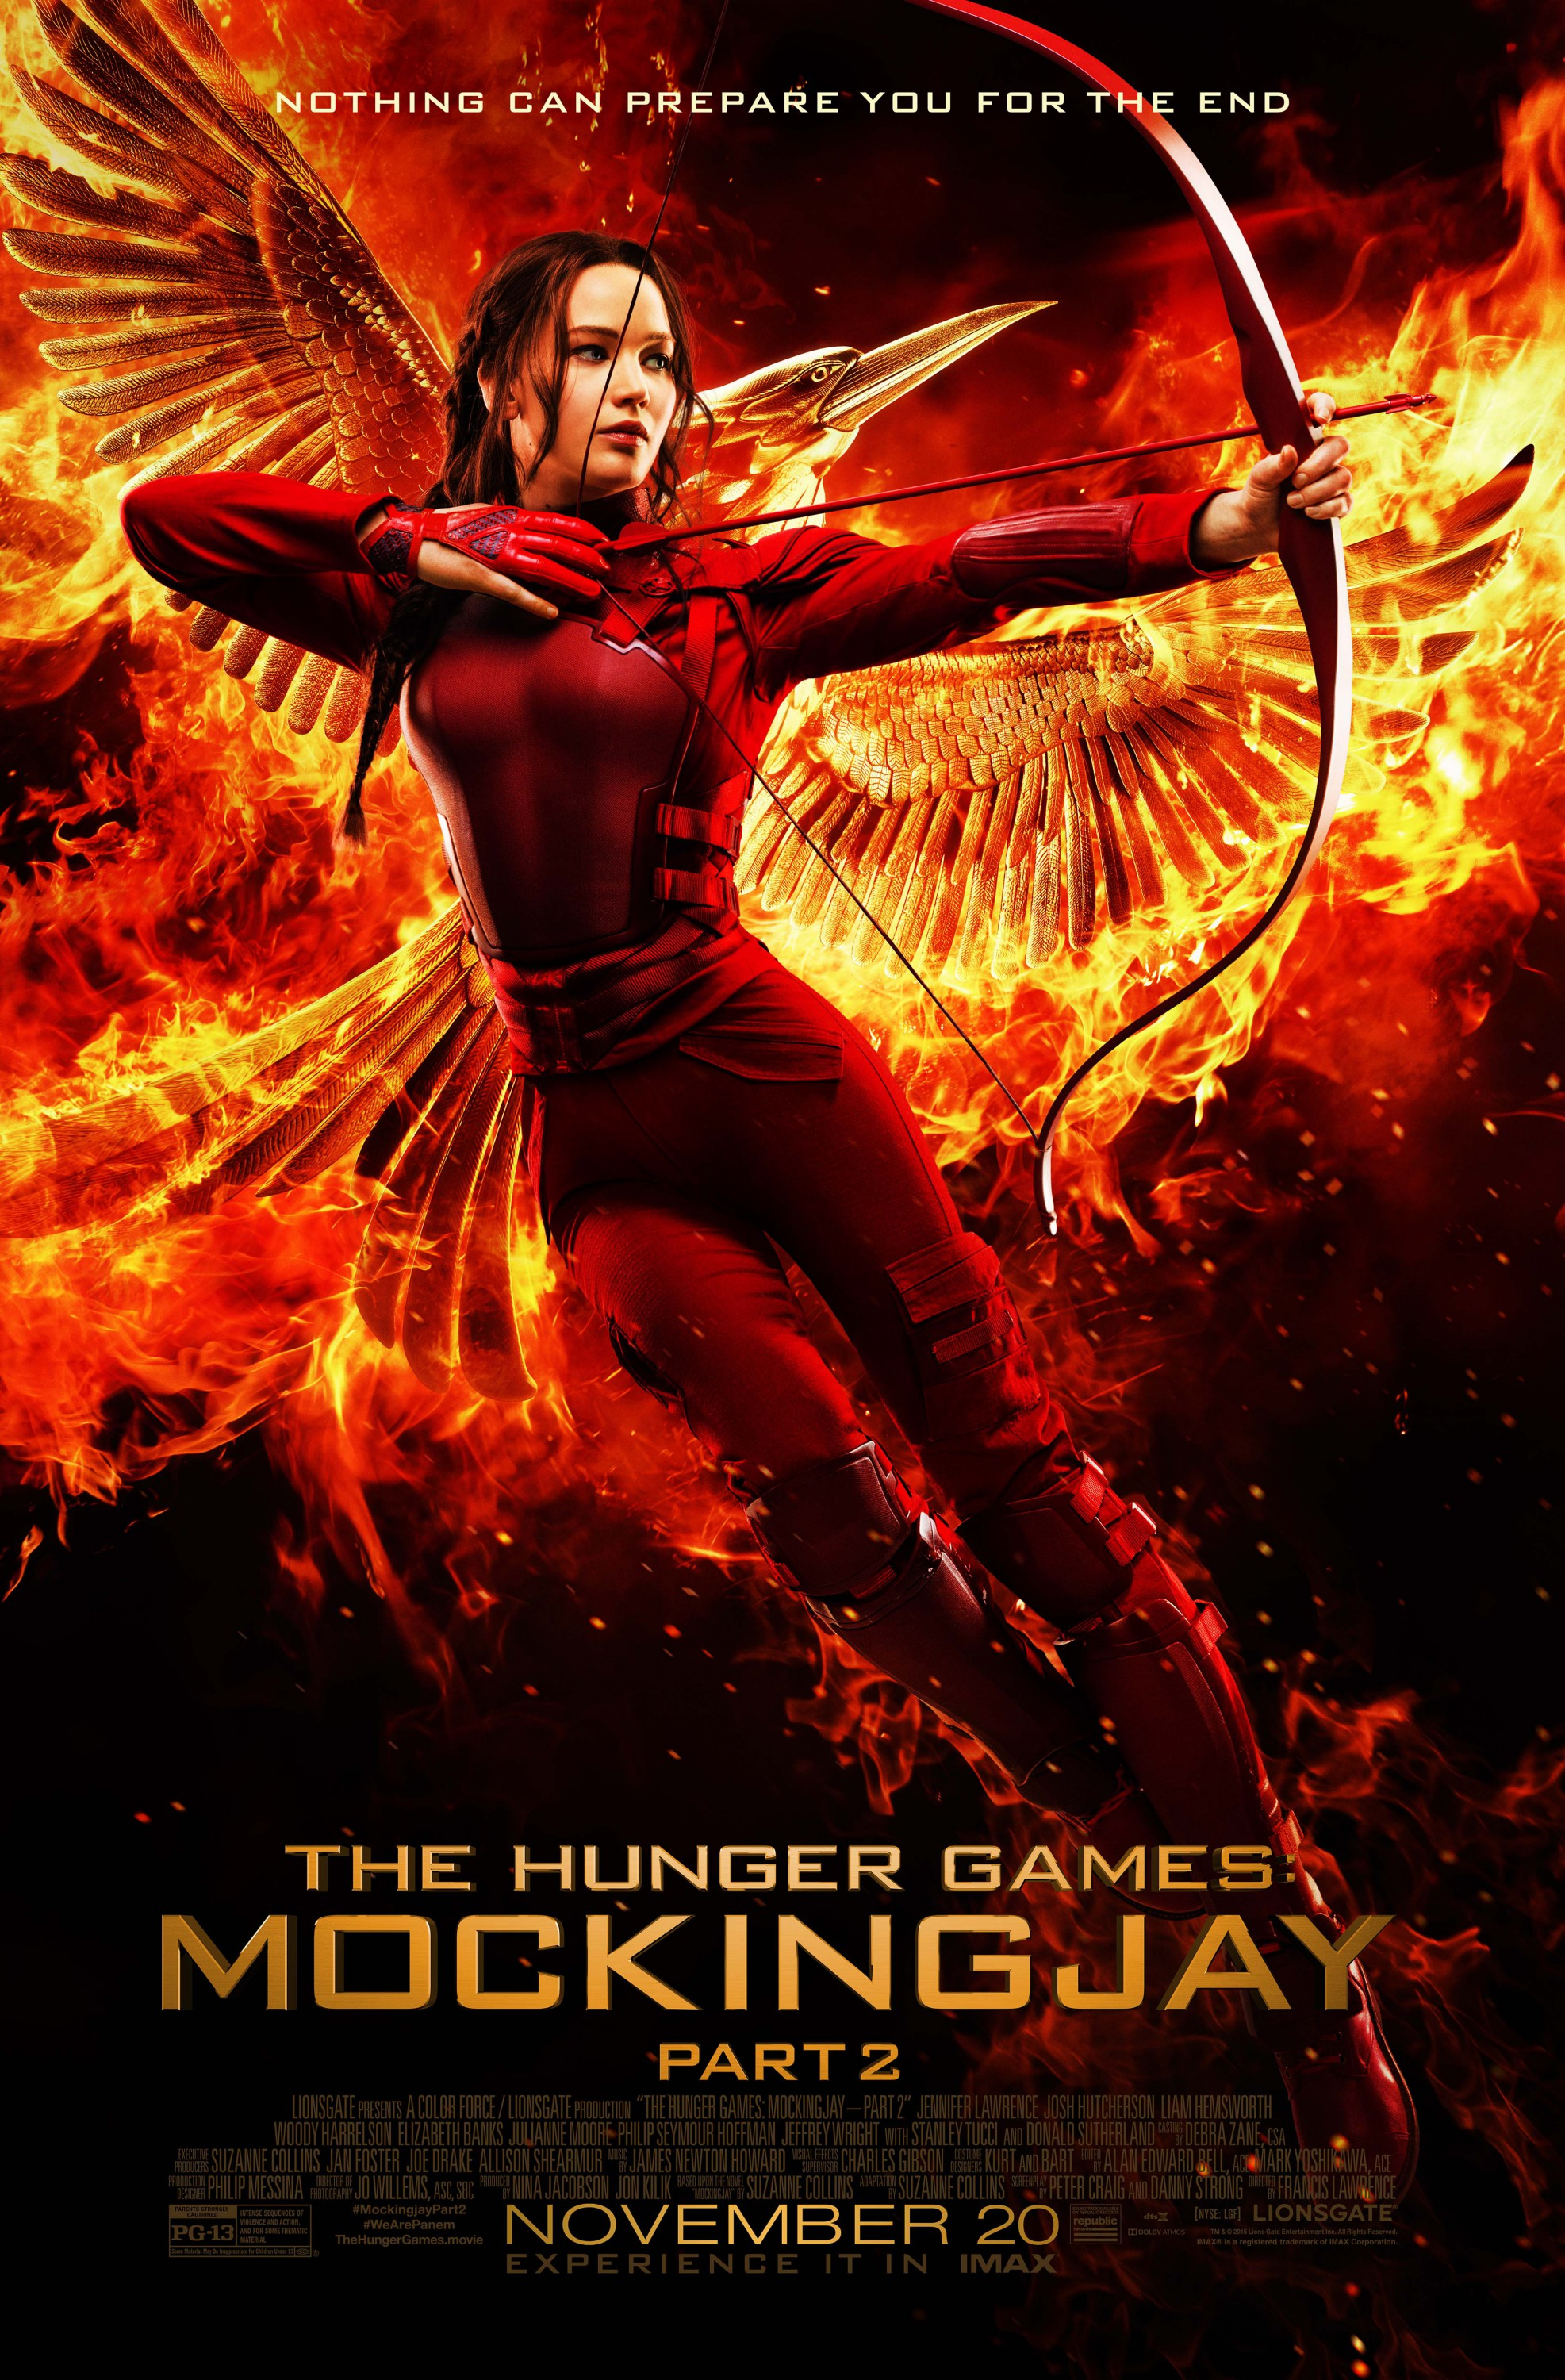 the hunger games mockingjay part 2 the hunger games wiki